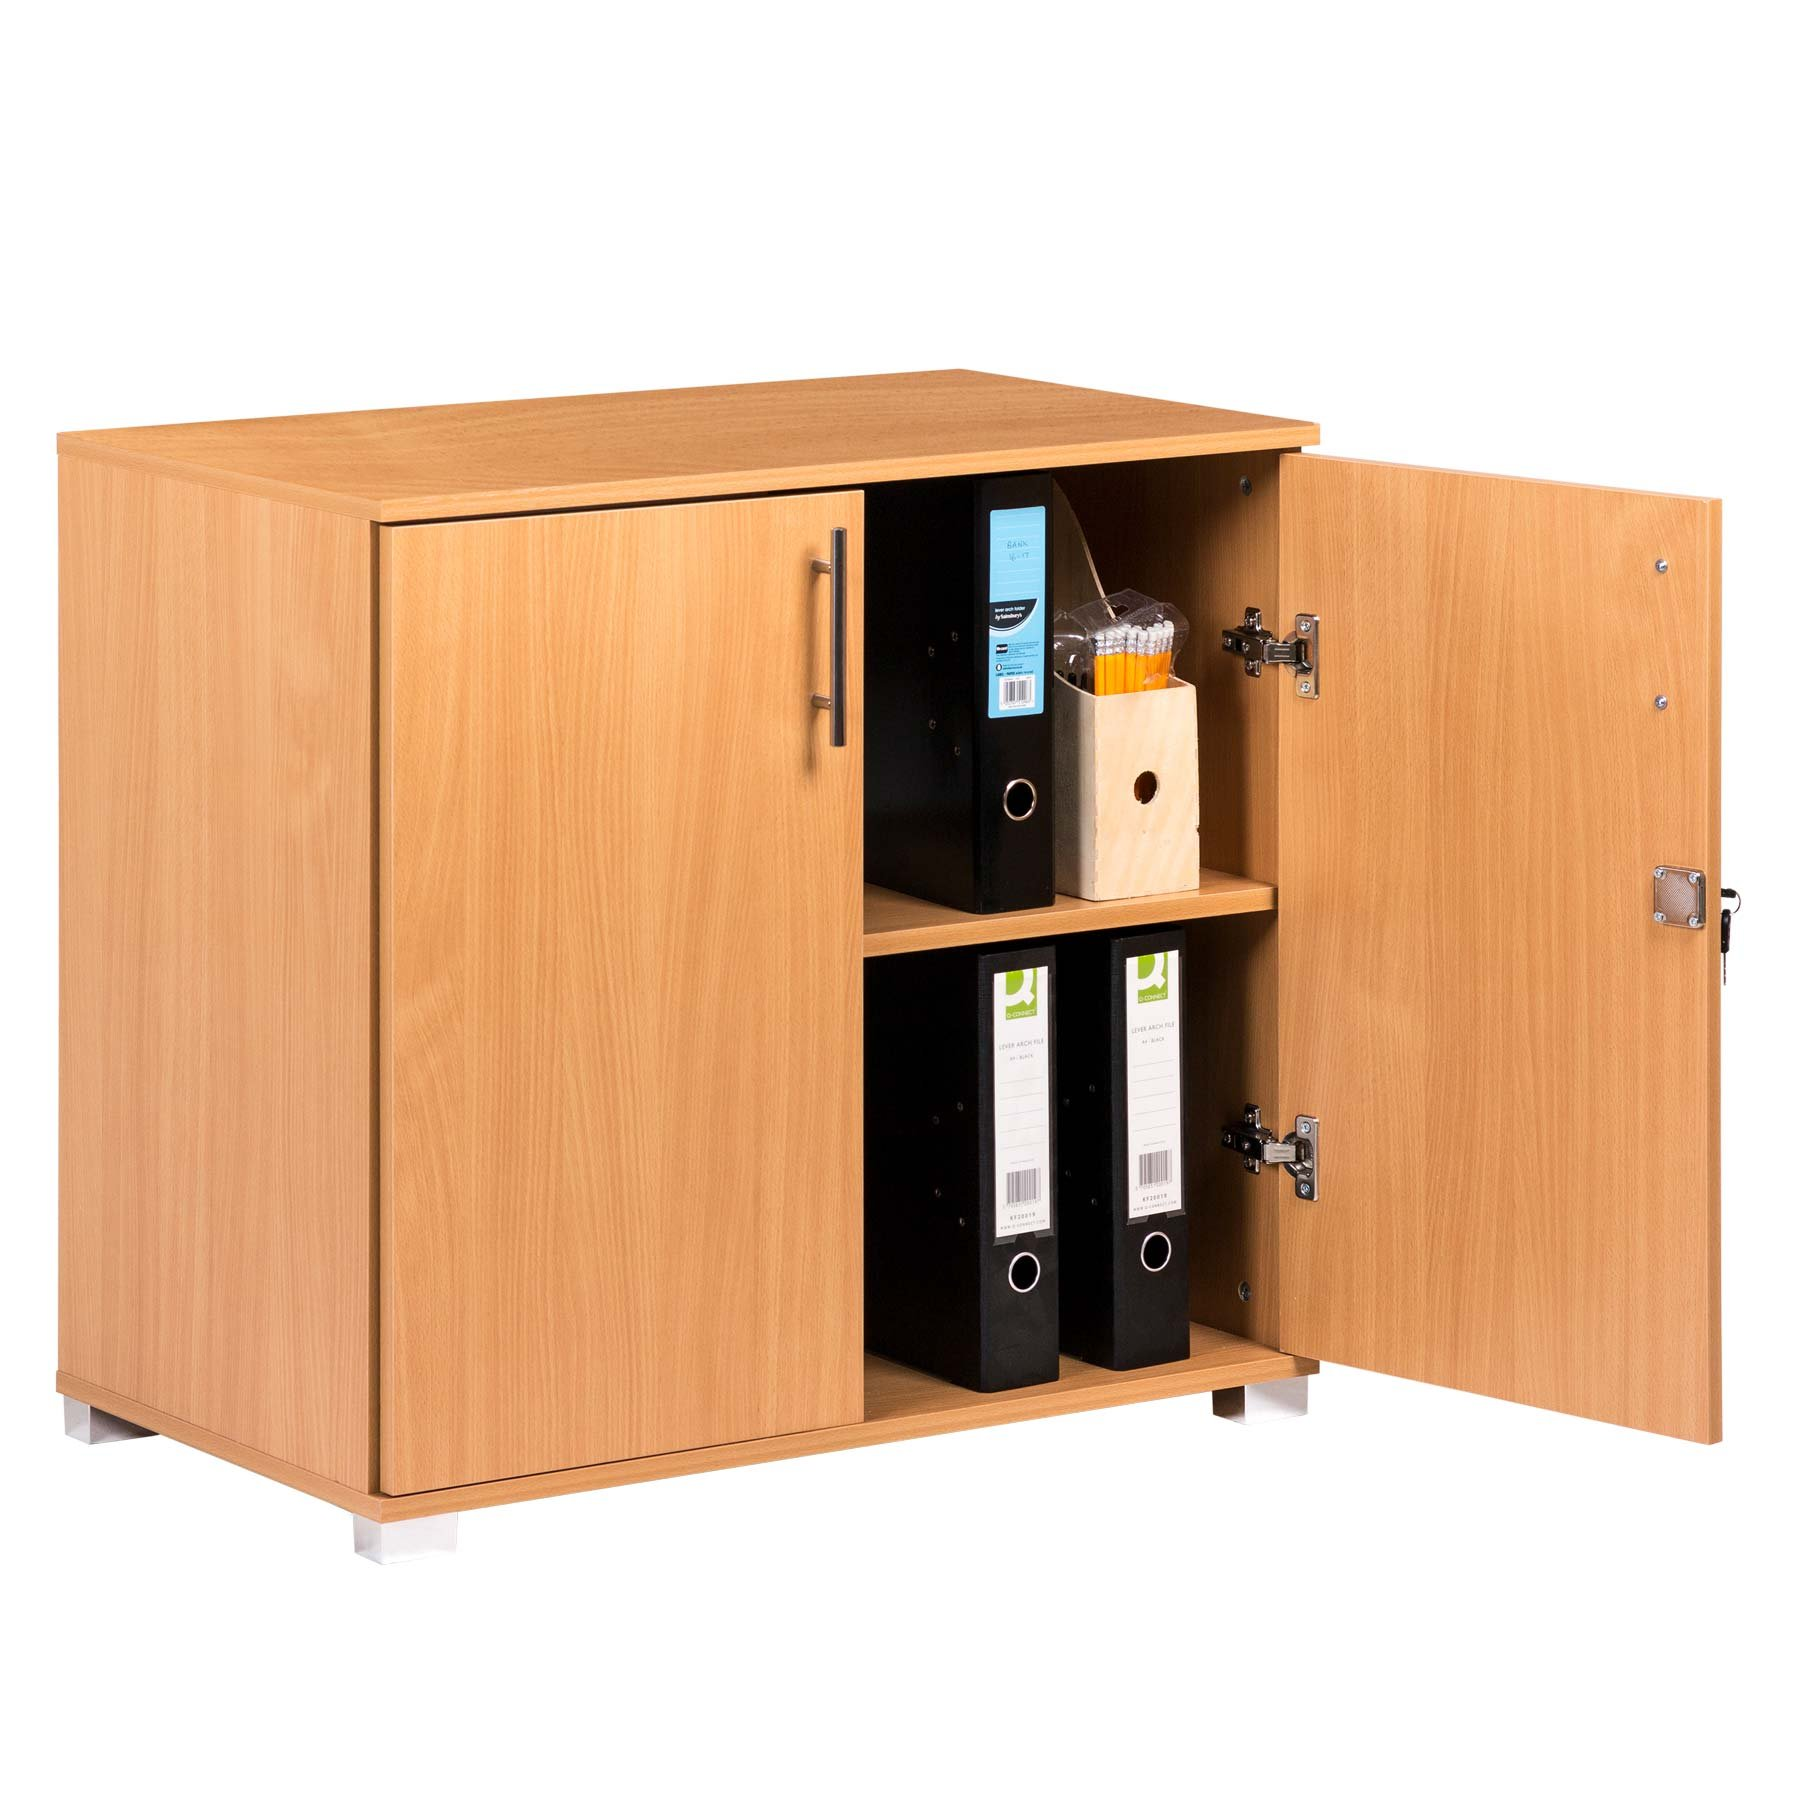 """Beech Storage Cabinet 2 Door Locking Cupboard Bookcase Desktop Height 28.9"""" Tall - Desk Extension in Beech Effect Wood Laminate - Home or Commercial Office use"""